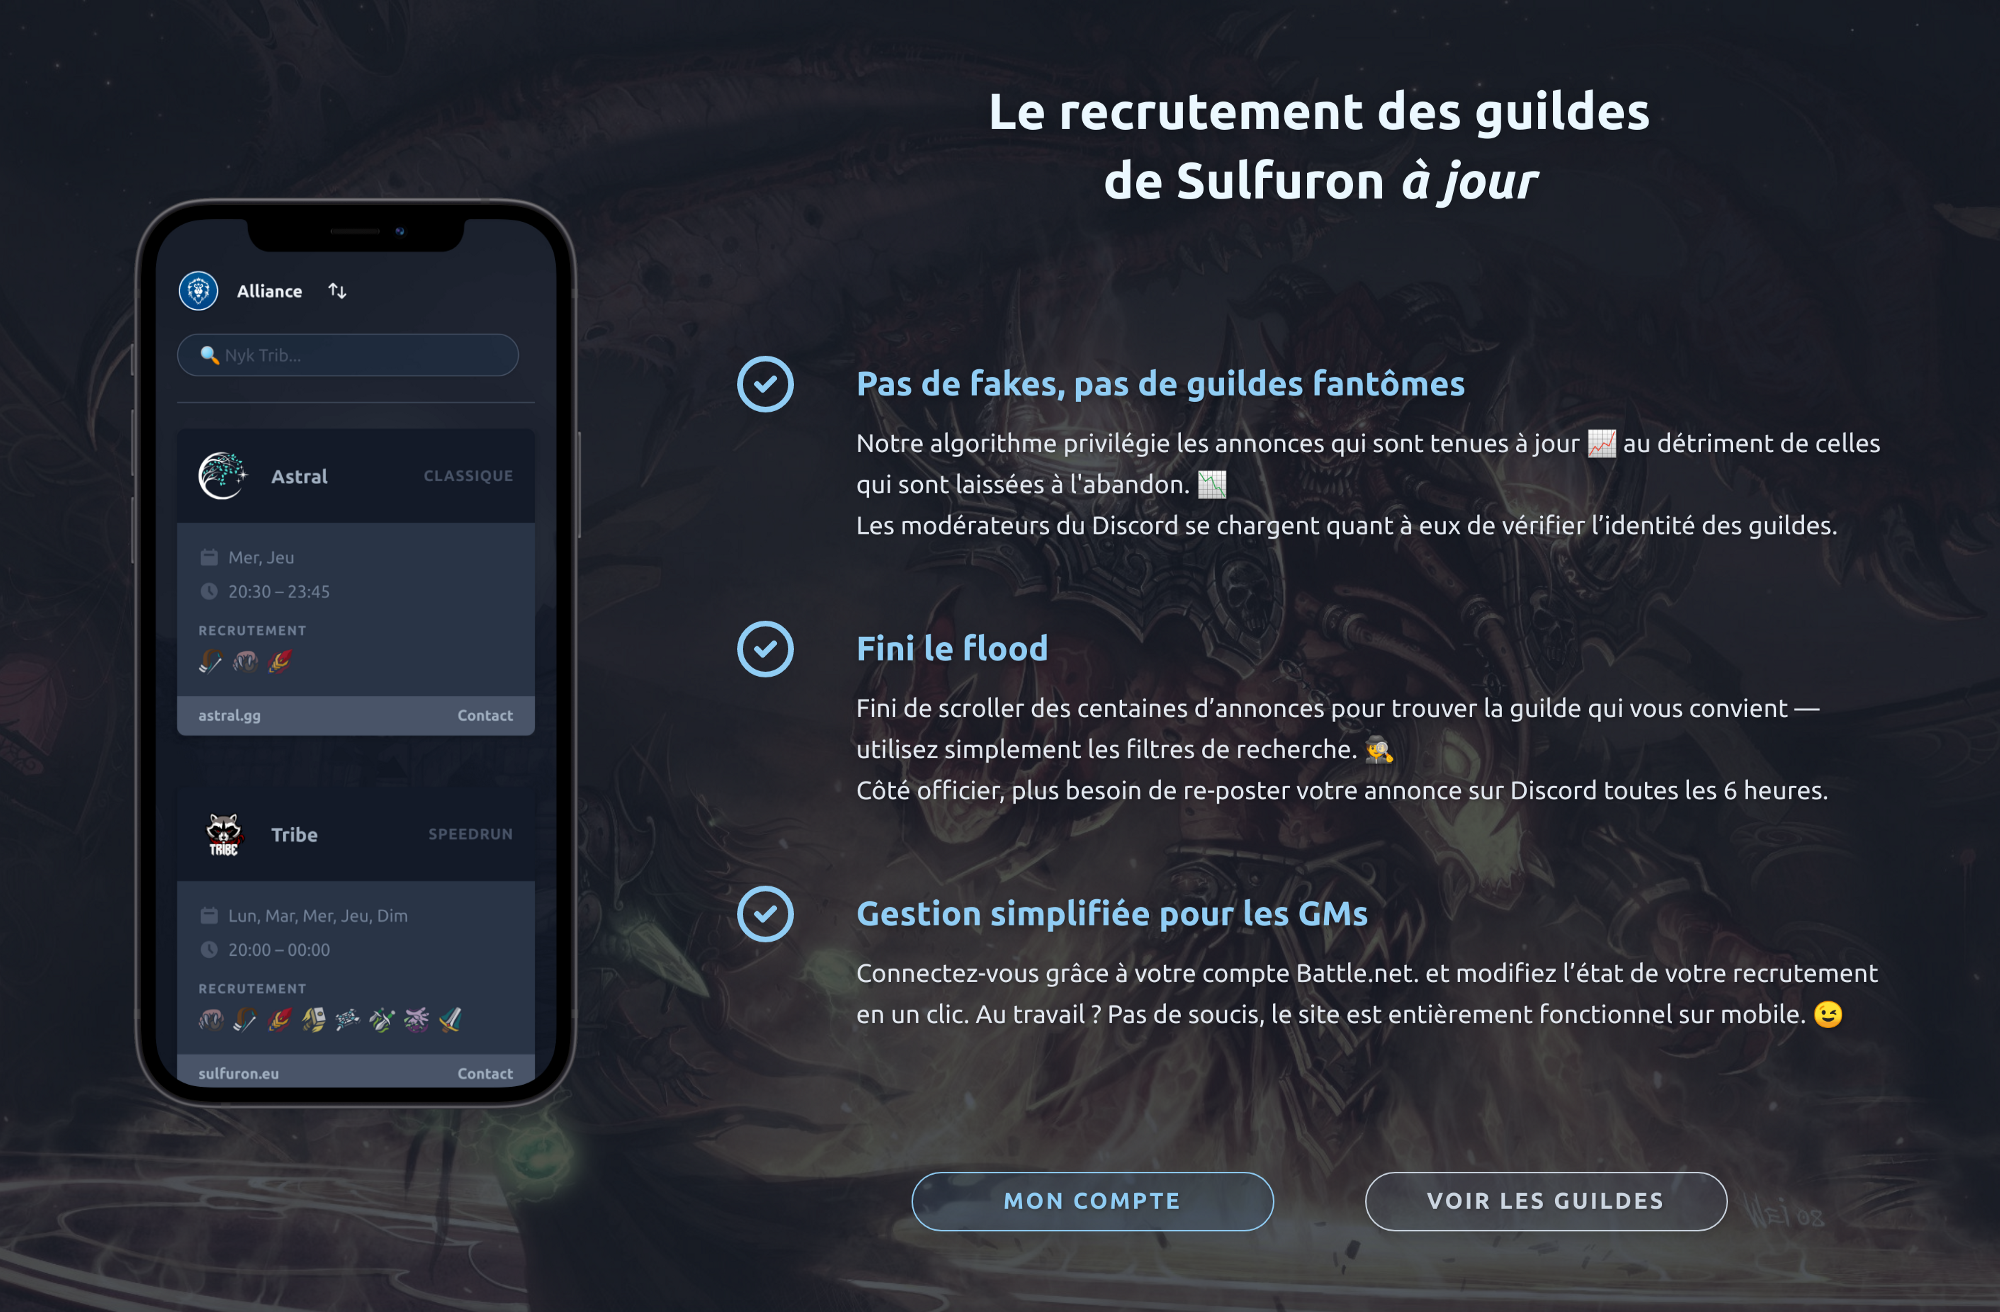 About page from the guilds portal website